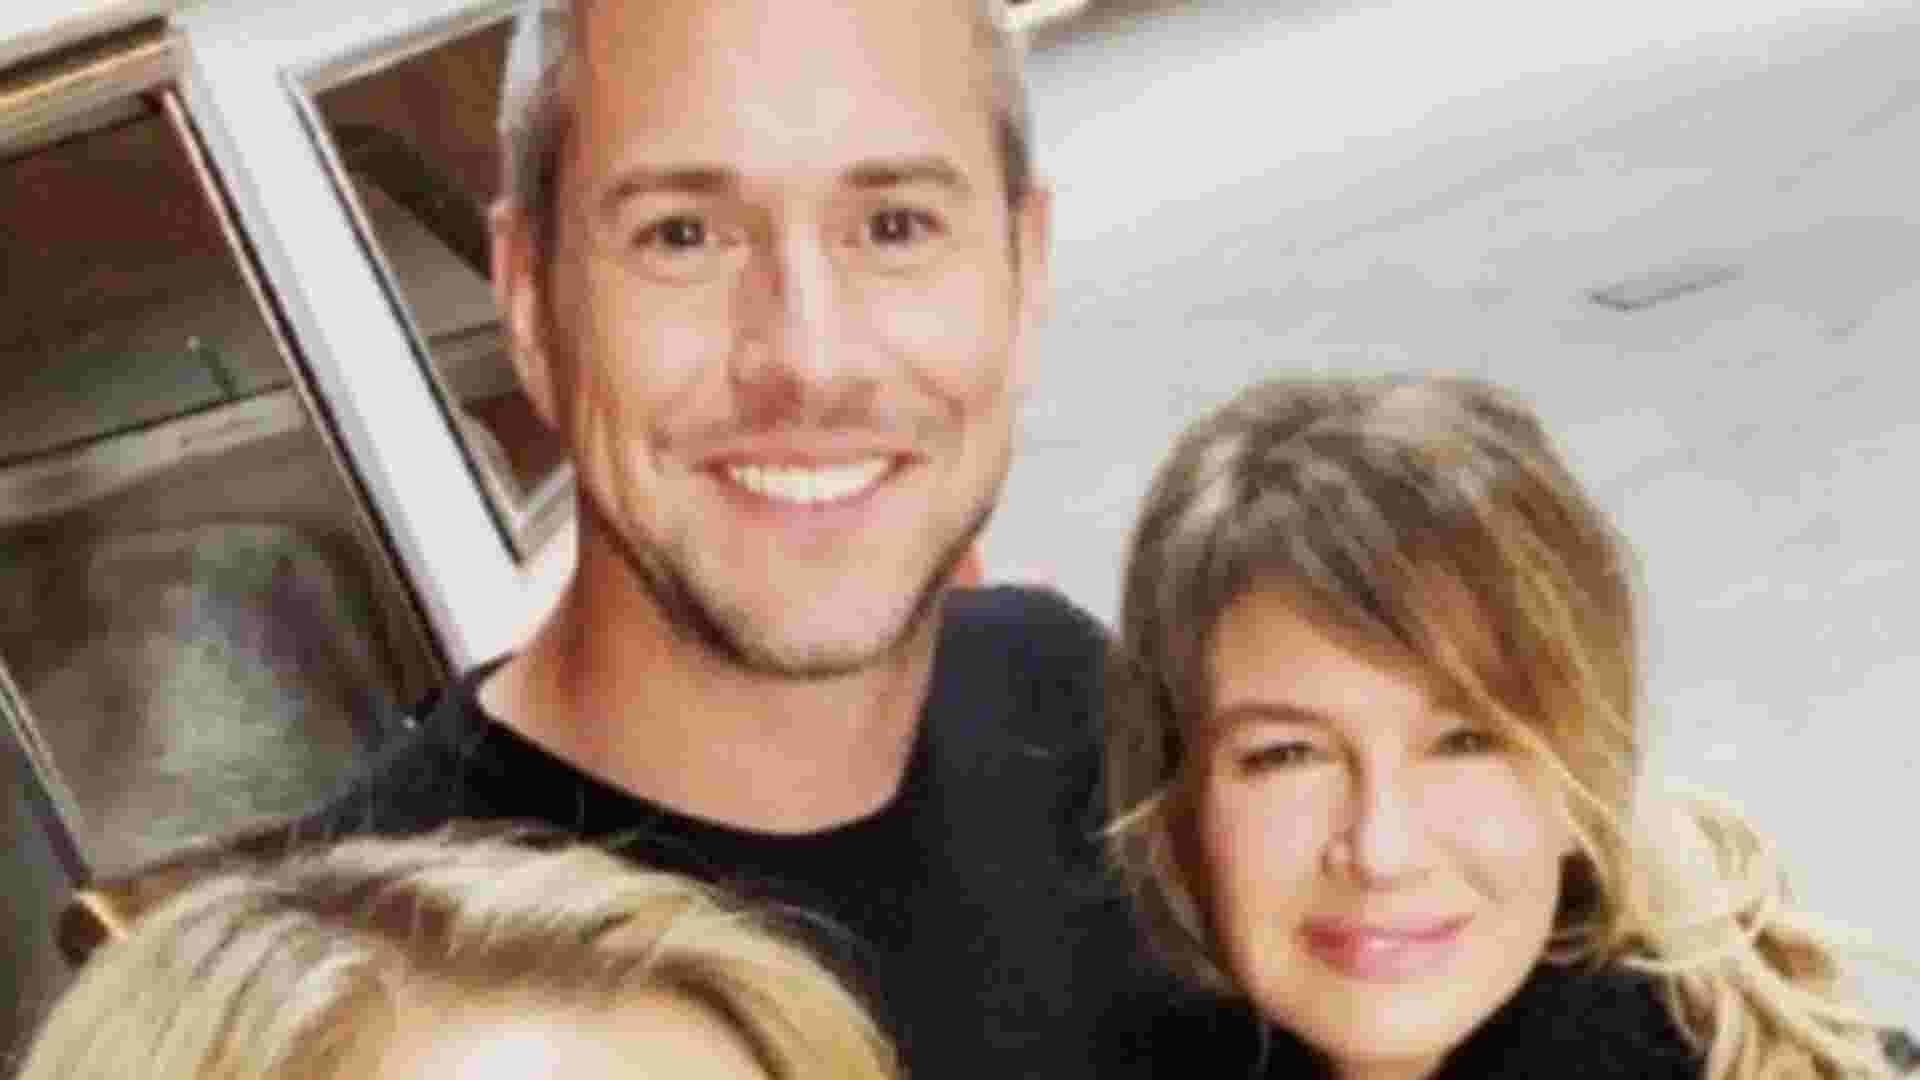 Renée Zellweger and new boyfriend Ant Anstead are Instagram official